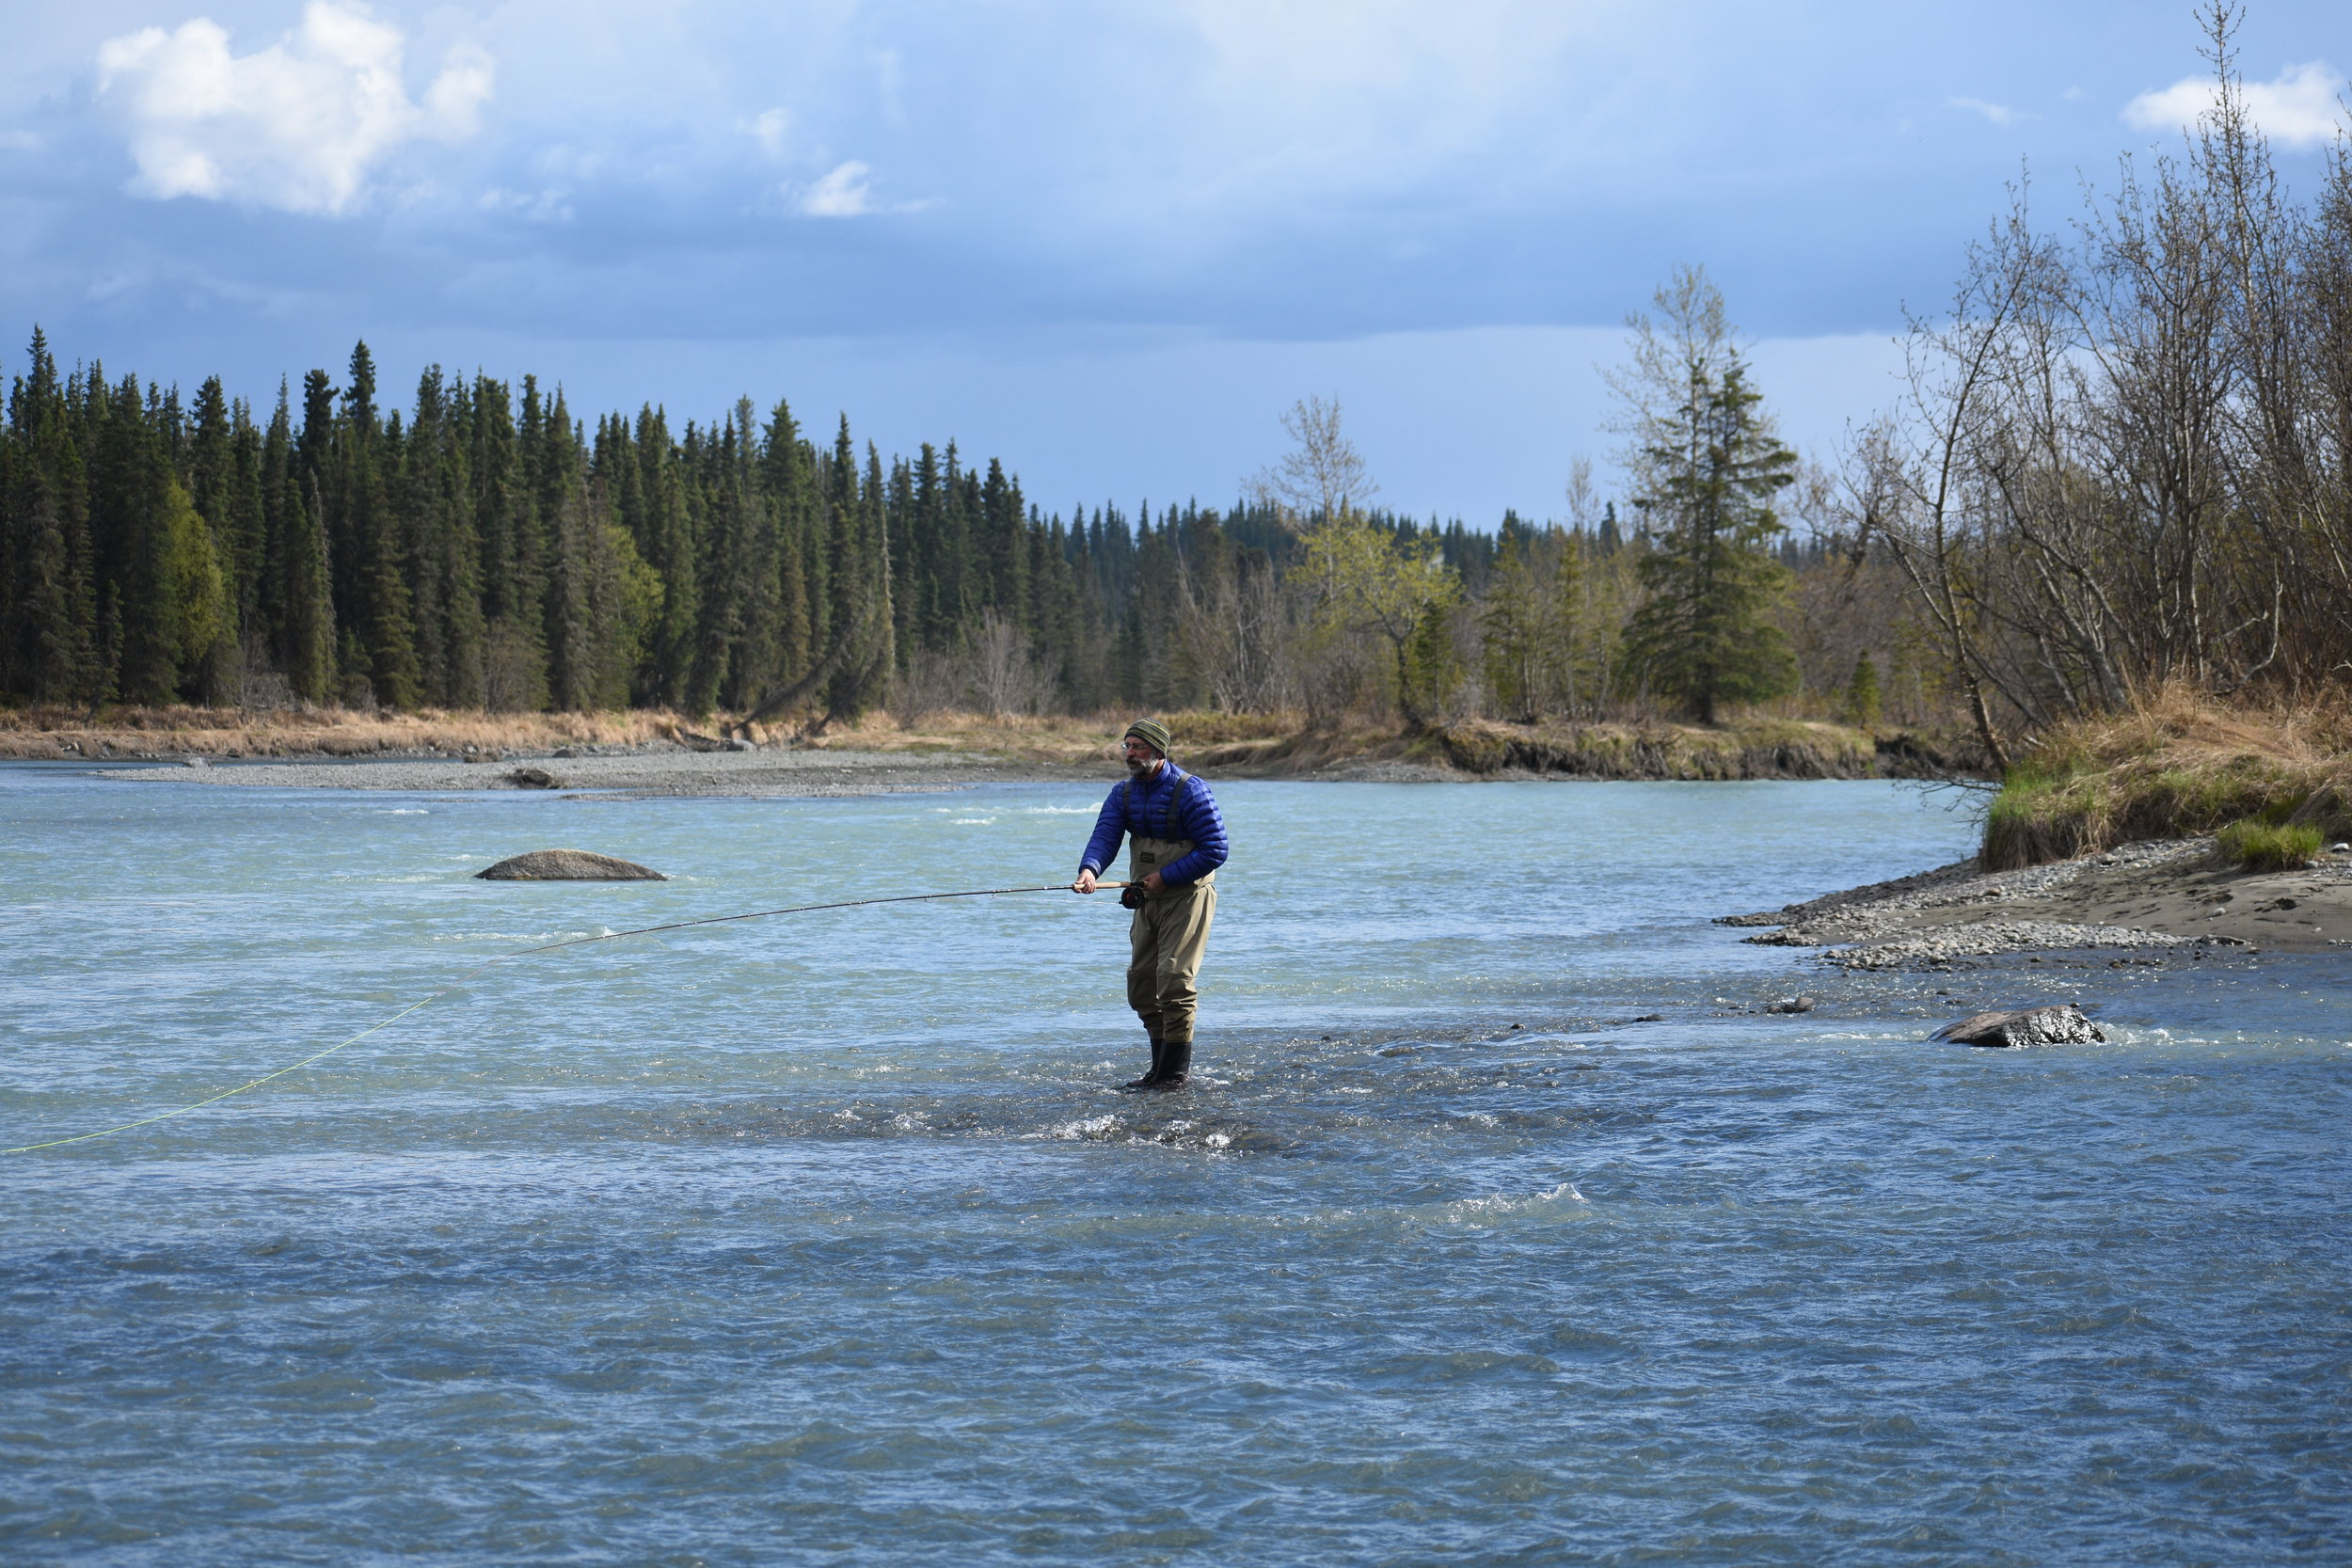 Doug setting up a snap-t on a classic king salmon run. Part of the enjoyment of spey fishing is the solitude and rhythmic casting and swinging through the run.